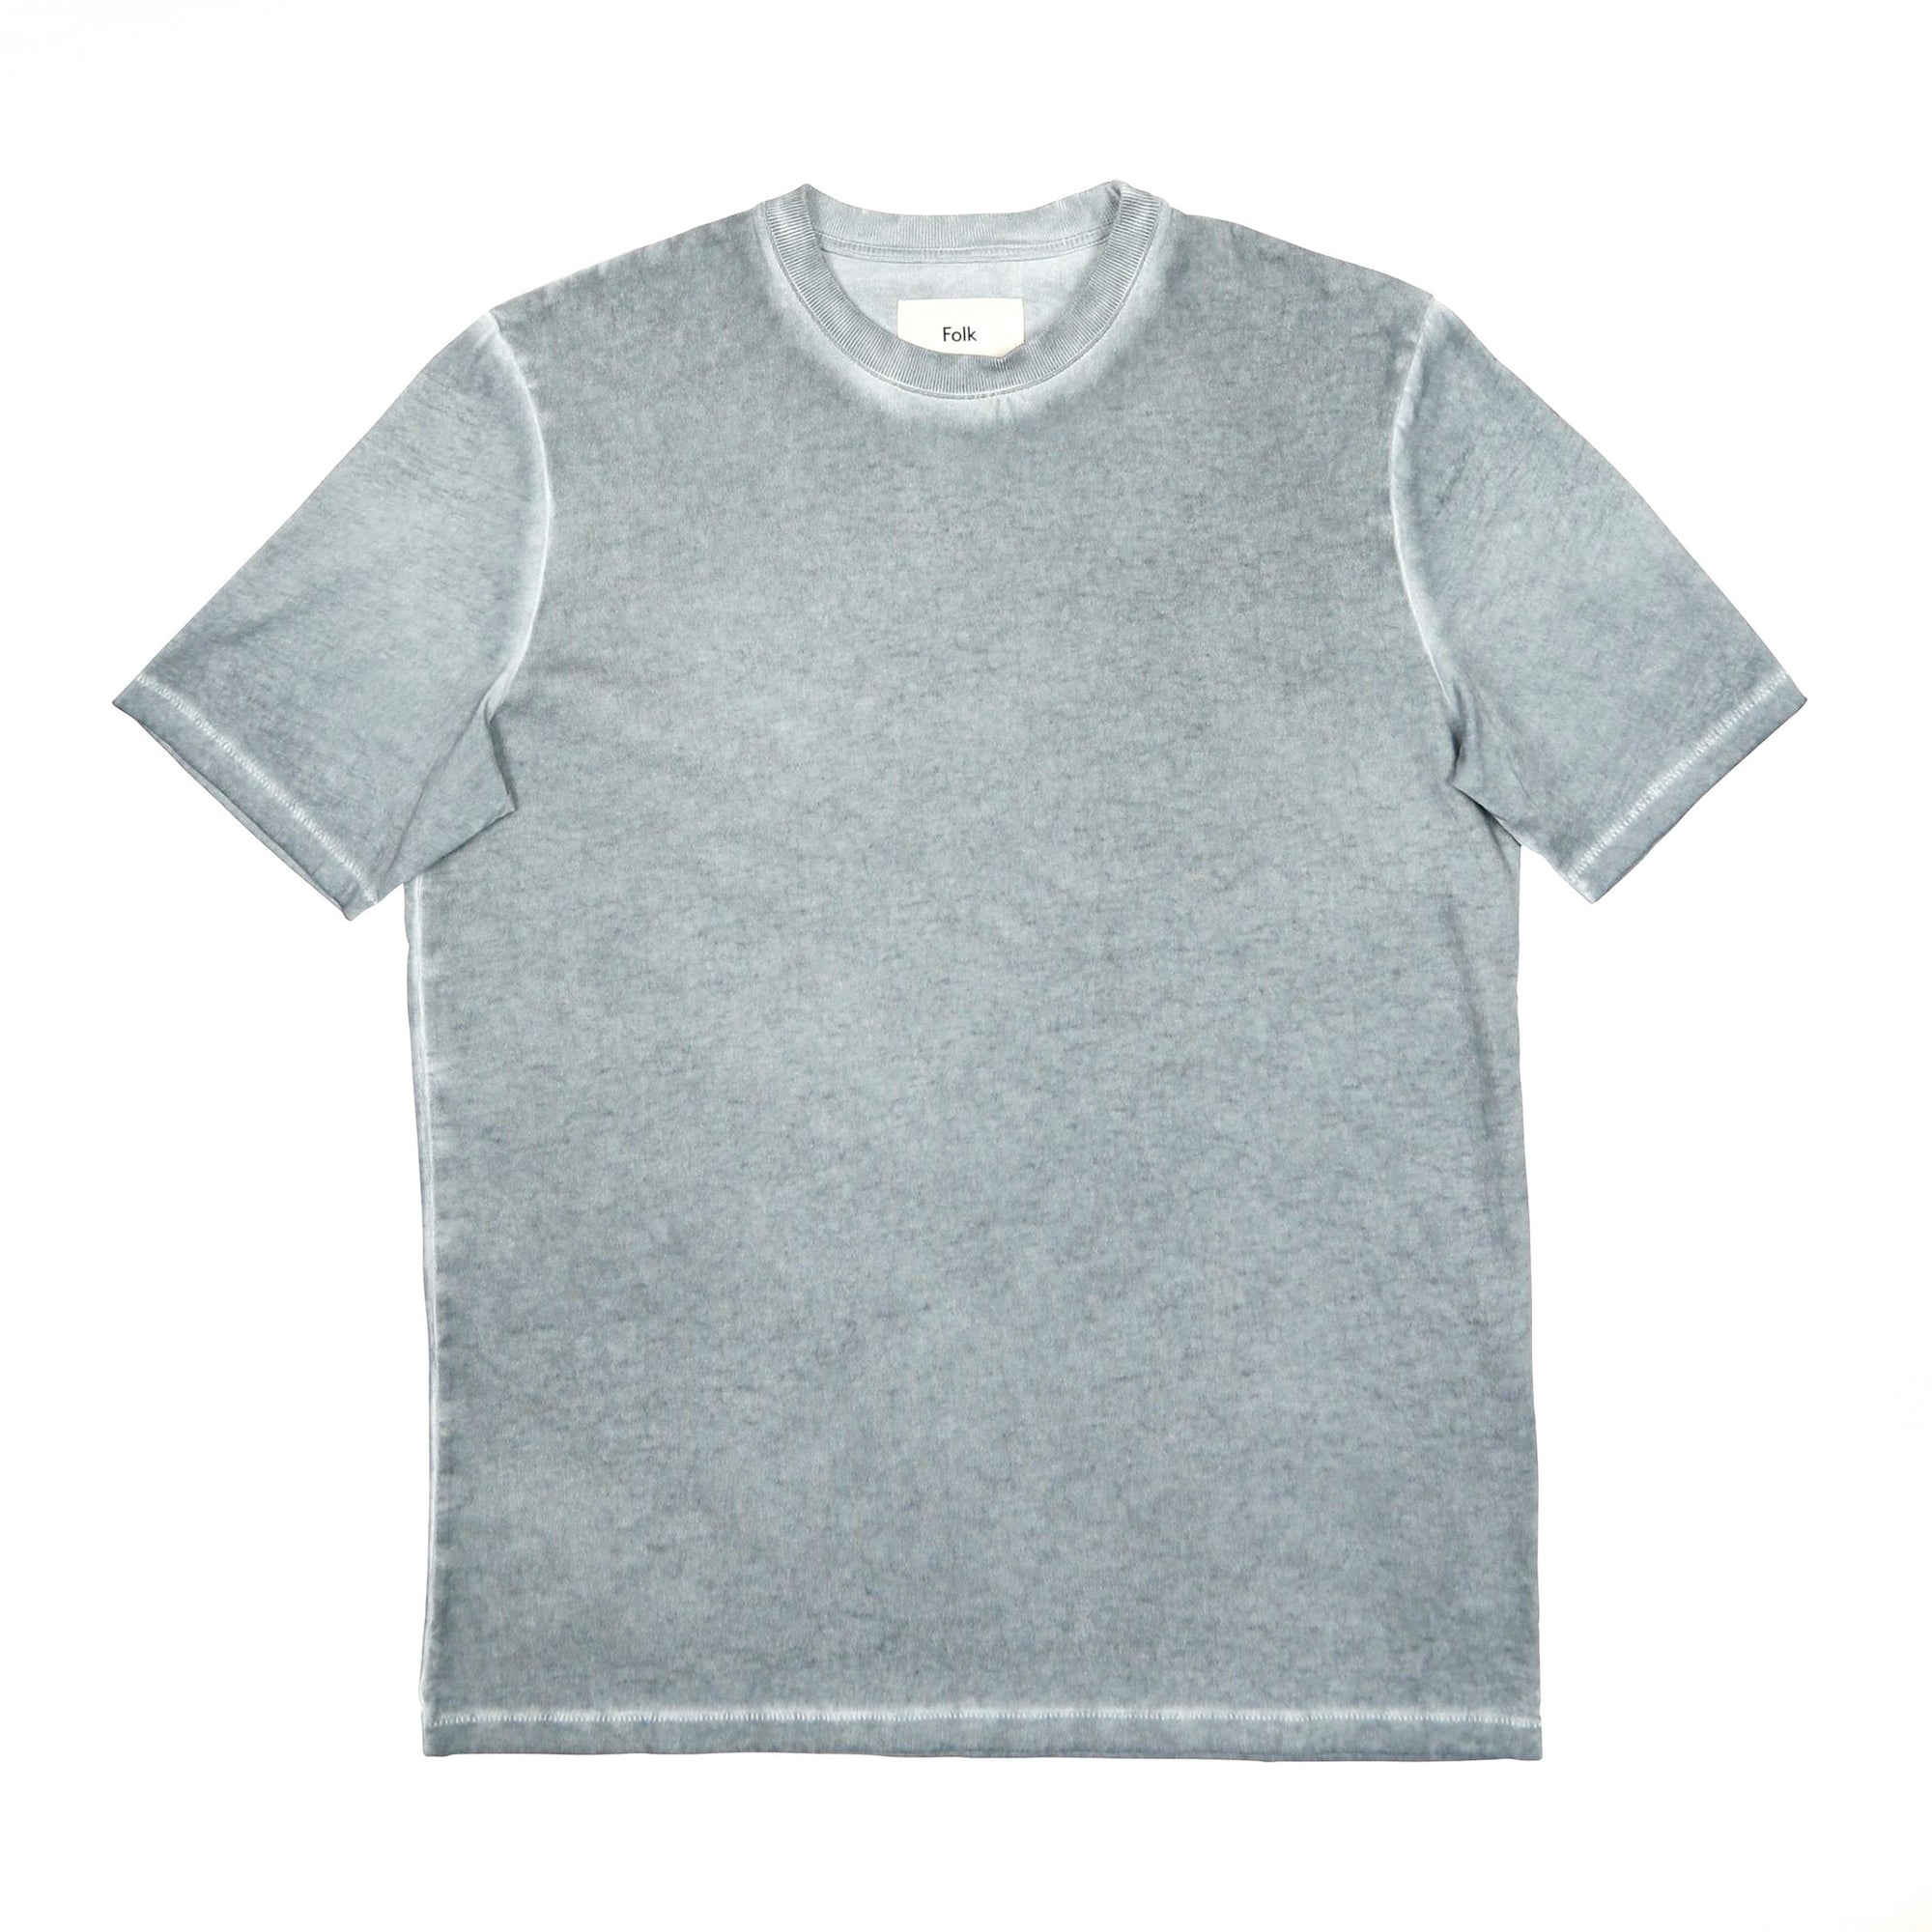 Folk Contrast Sleve Tee: Cold Dye Woad - The Union Project